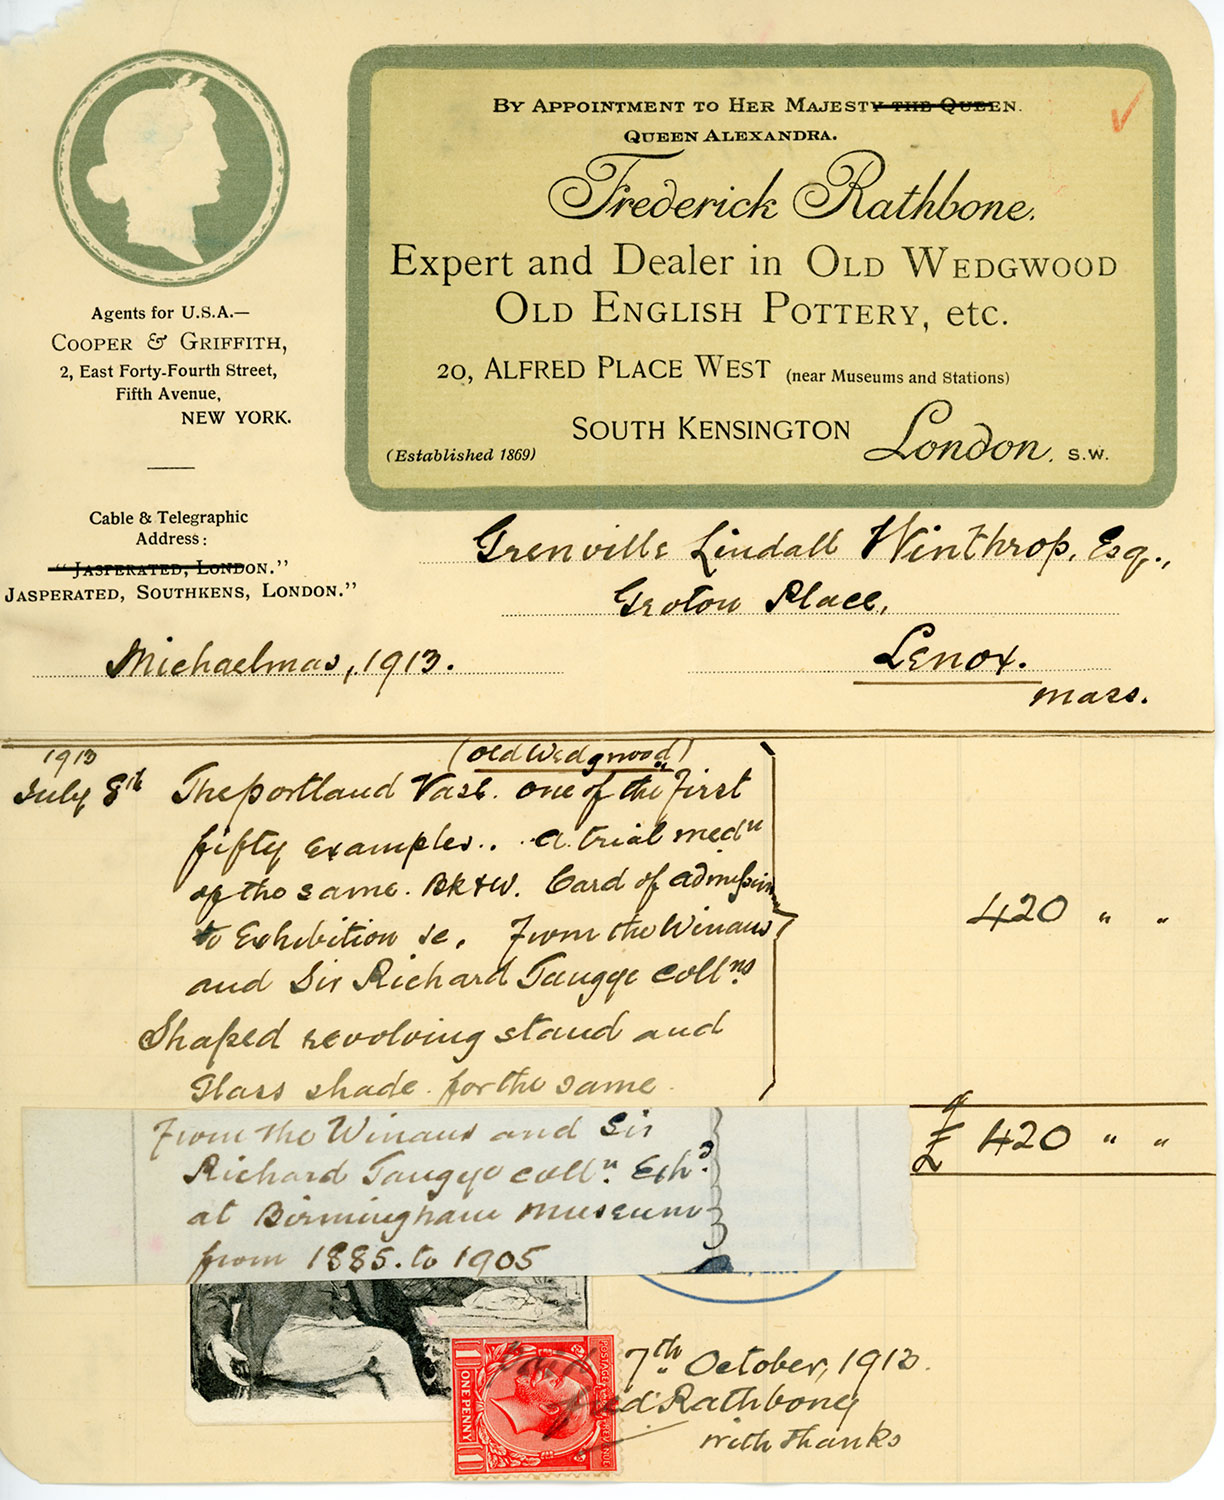 "An invoice, addressed to Grenville Lindall Winthrop, Esq., and dated ""Michaelmas, 1913,"" shows handwritten text about the Portalnd Vase in the left column and ""420"" in the right. The letterhead of Frederick Rathbone appears at the top in a green-bordered label."